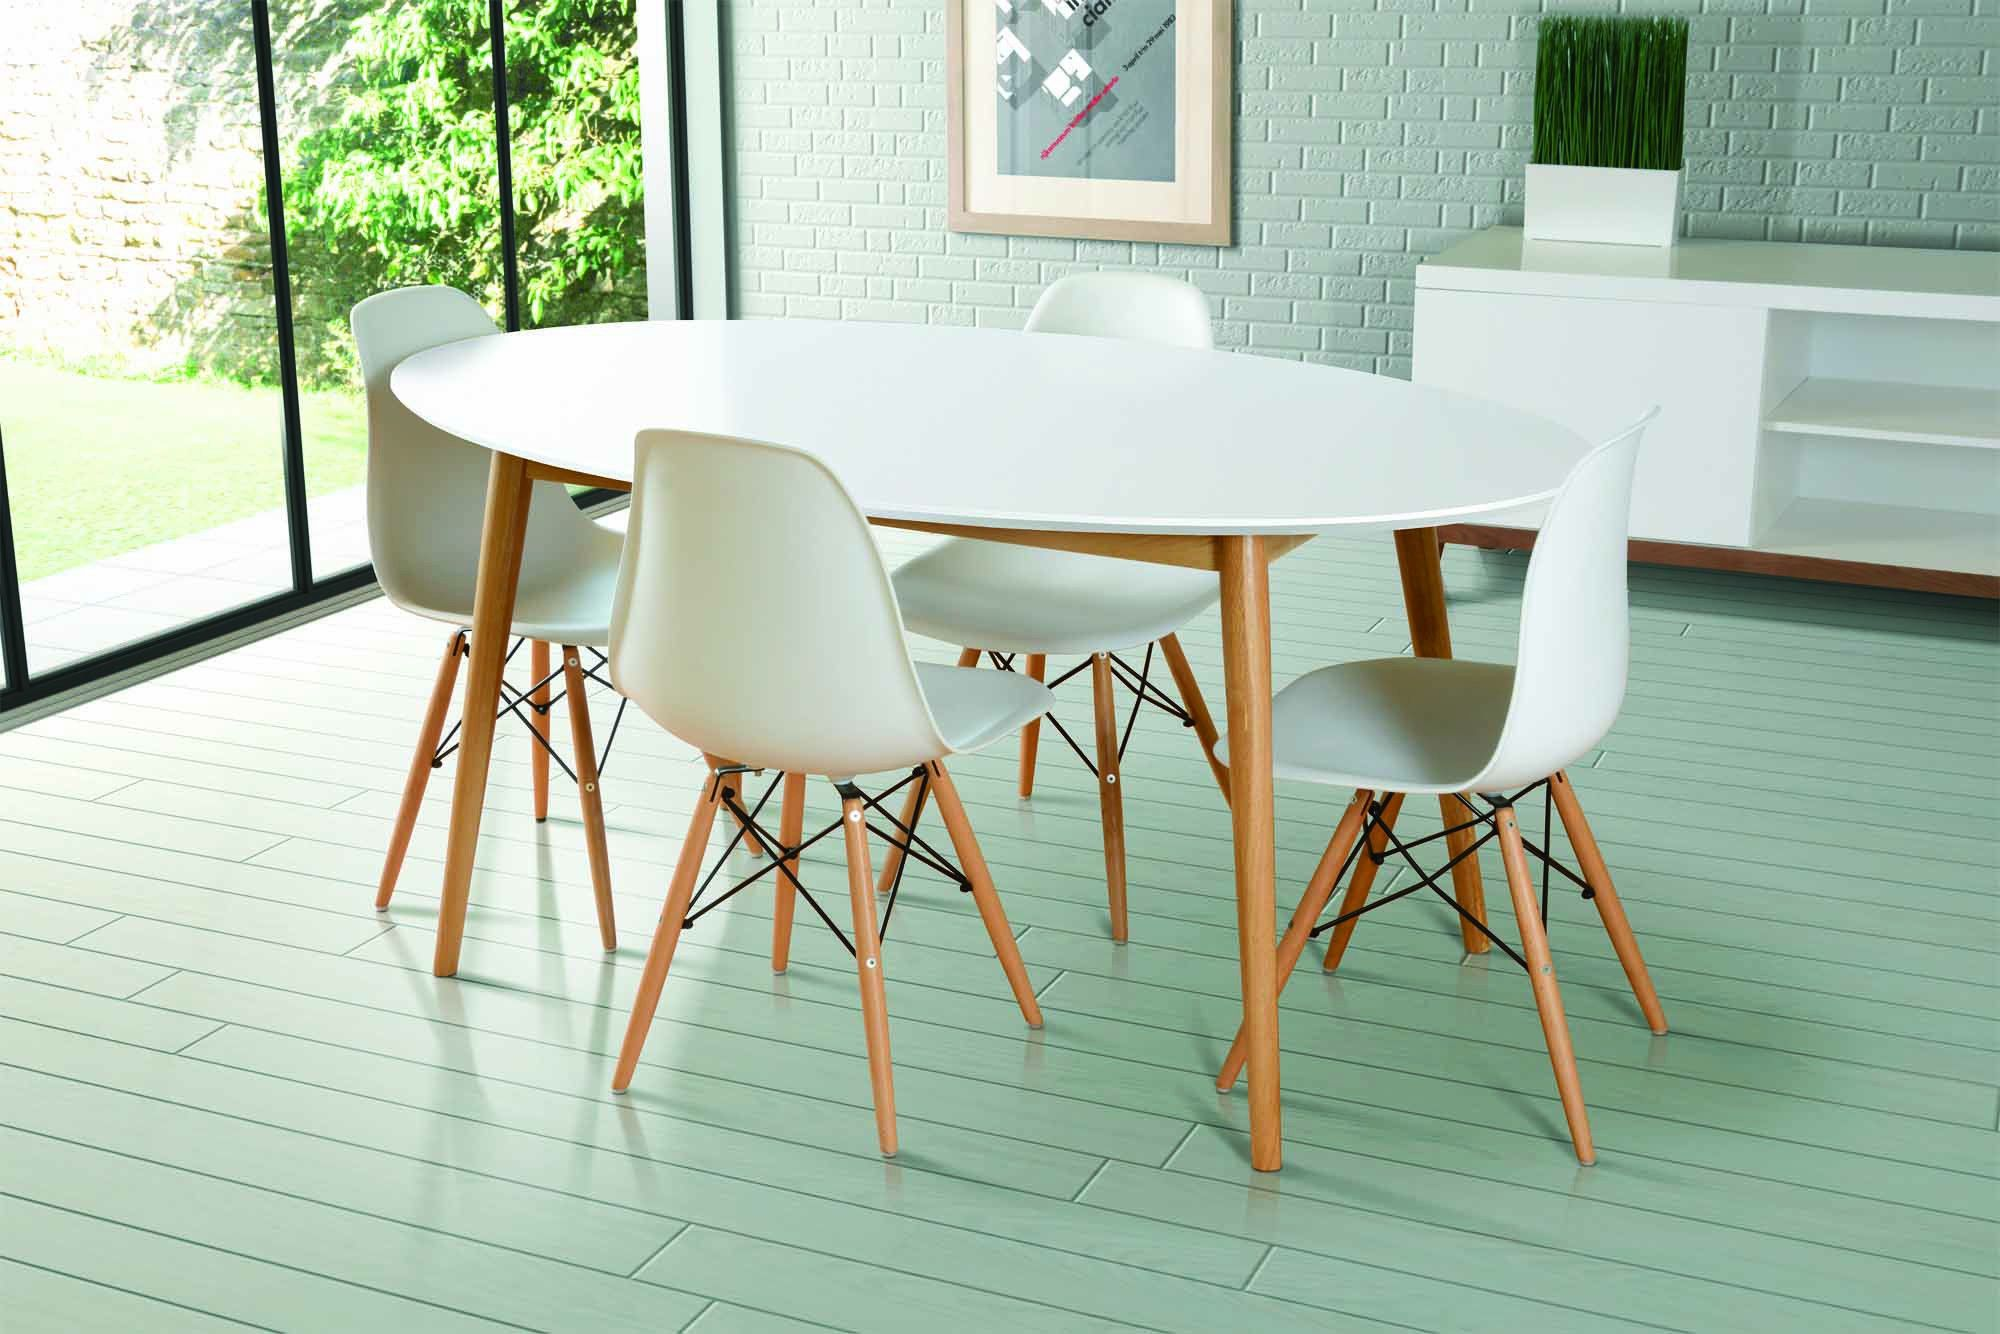 My Furniture Tretton Retro Solid Oak Or Lacquered White Gloss Round Oval Dining Coffee Table Oval Table Dining Dining Table White Oval Dining Table